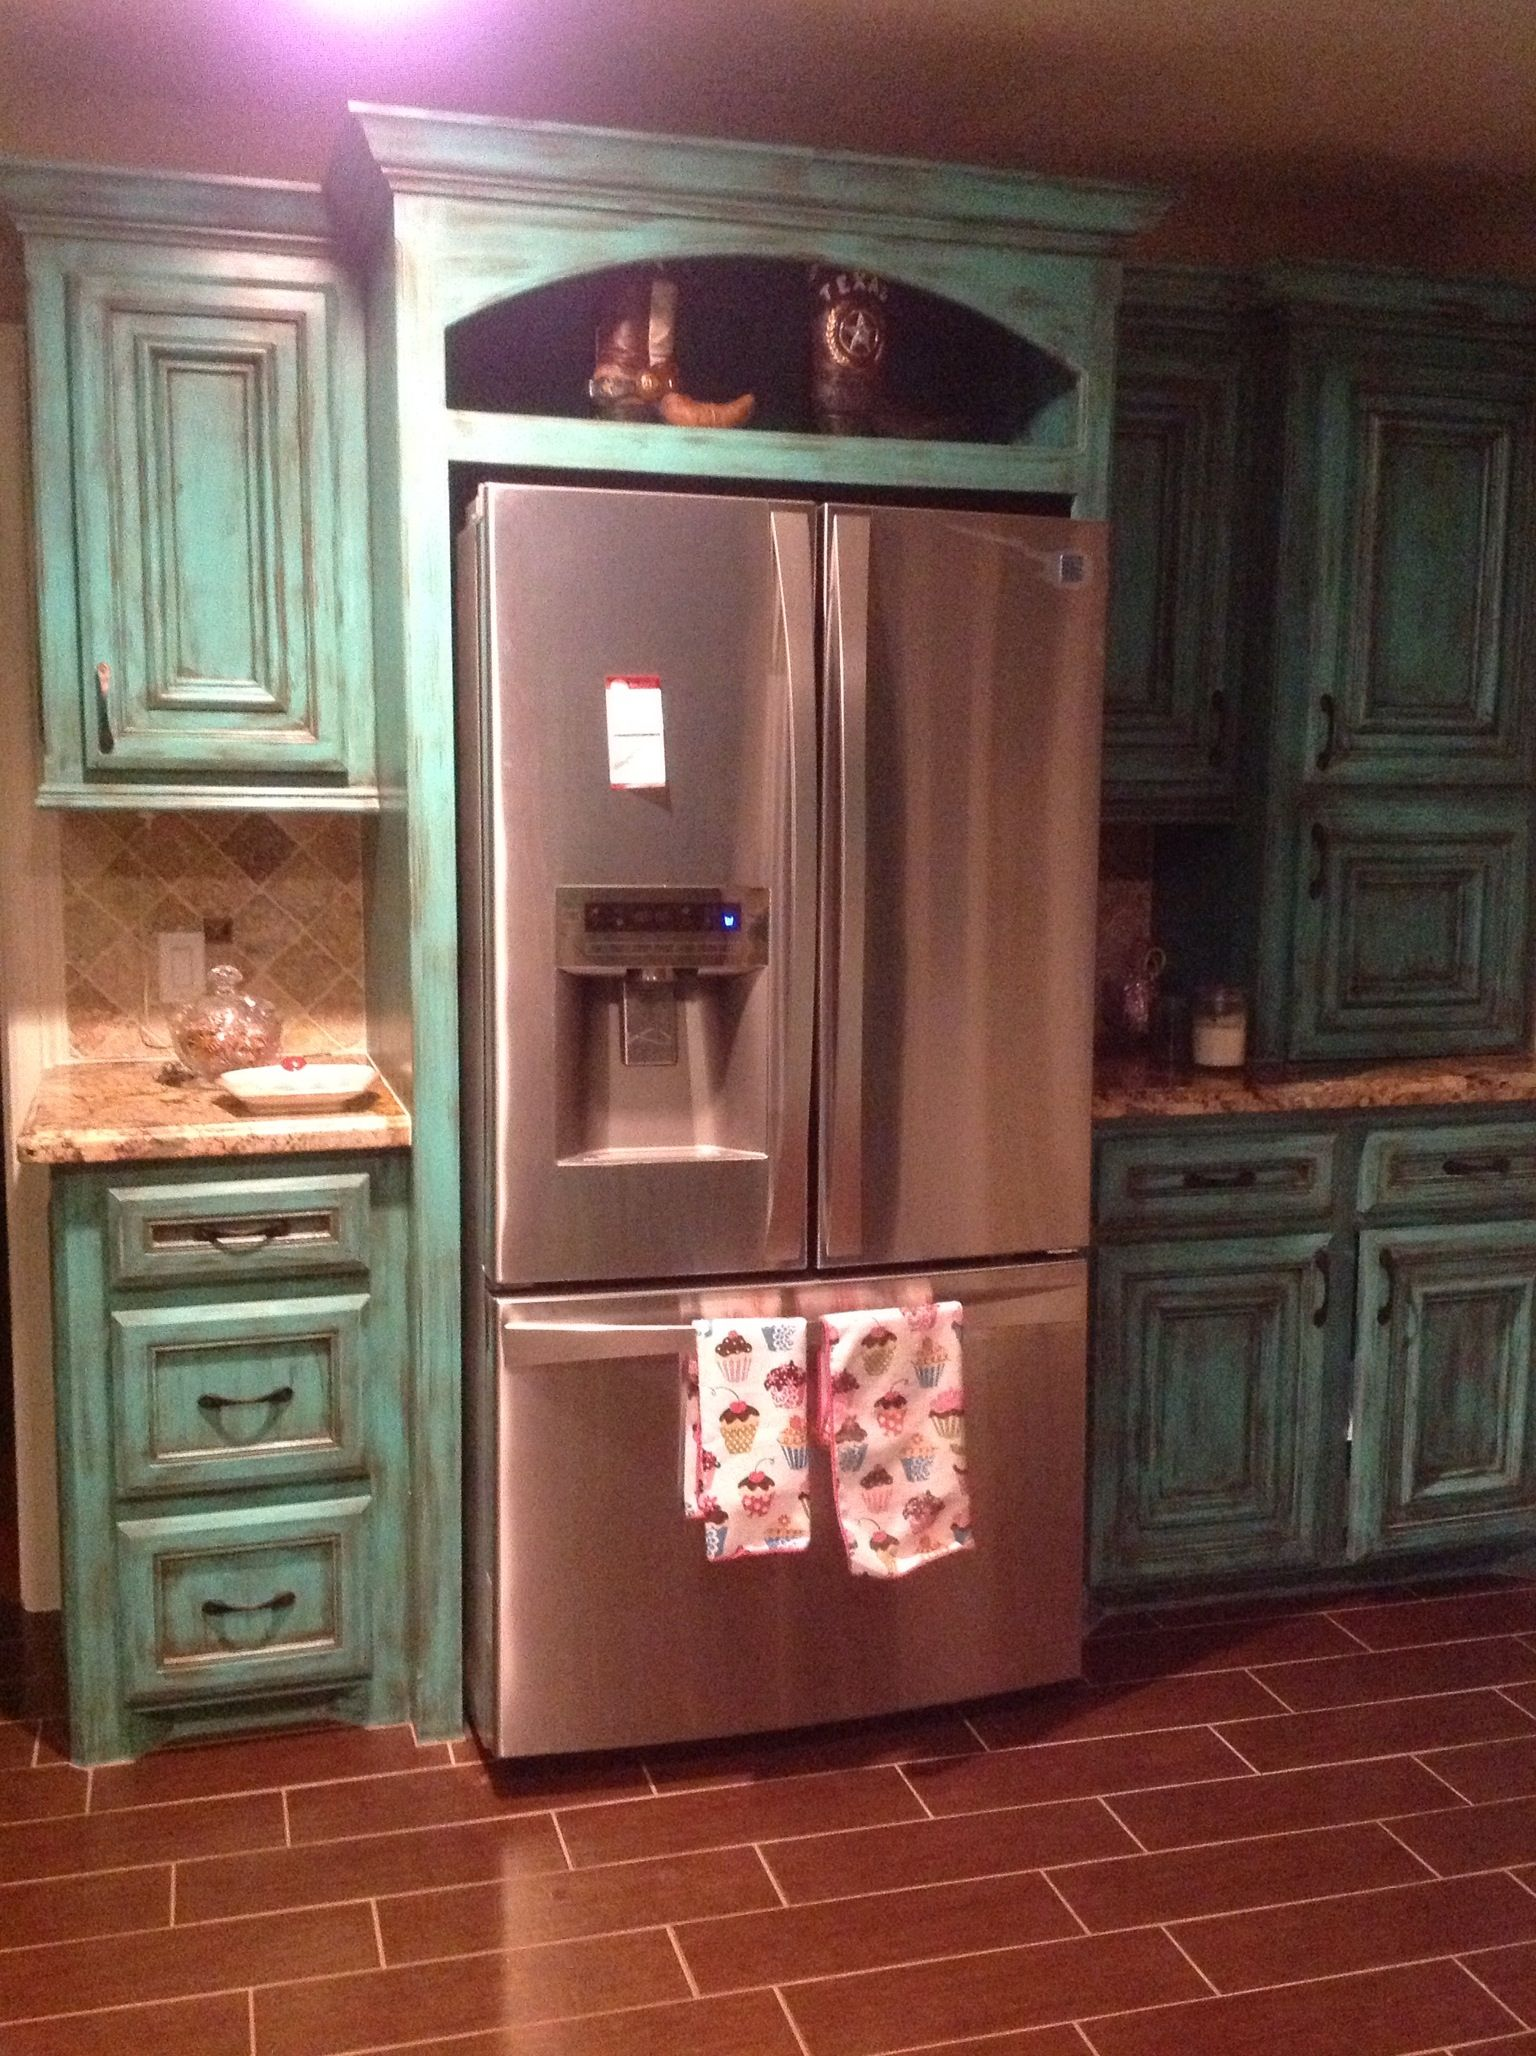 Western Style Kitchen Cabinets Turquoise Kitchen Western Another View I Love This But